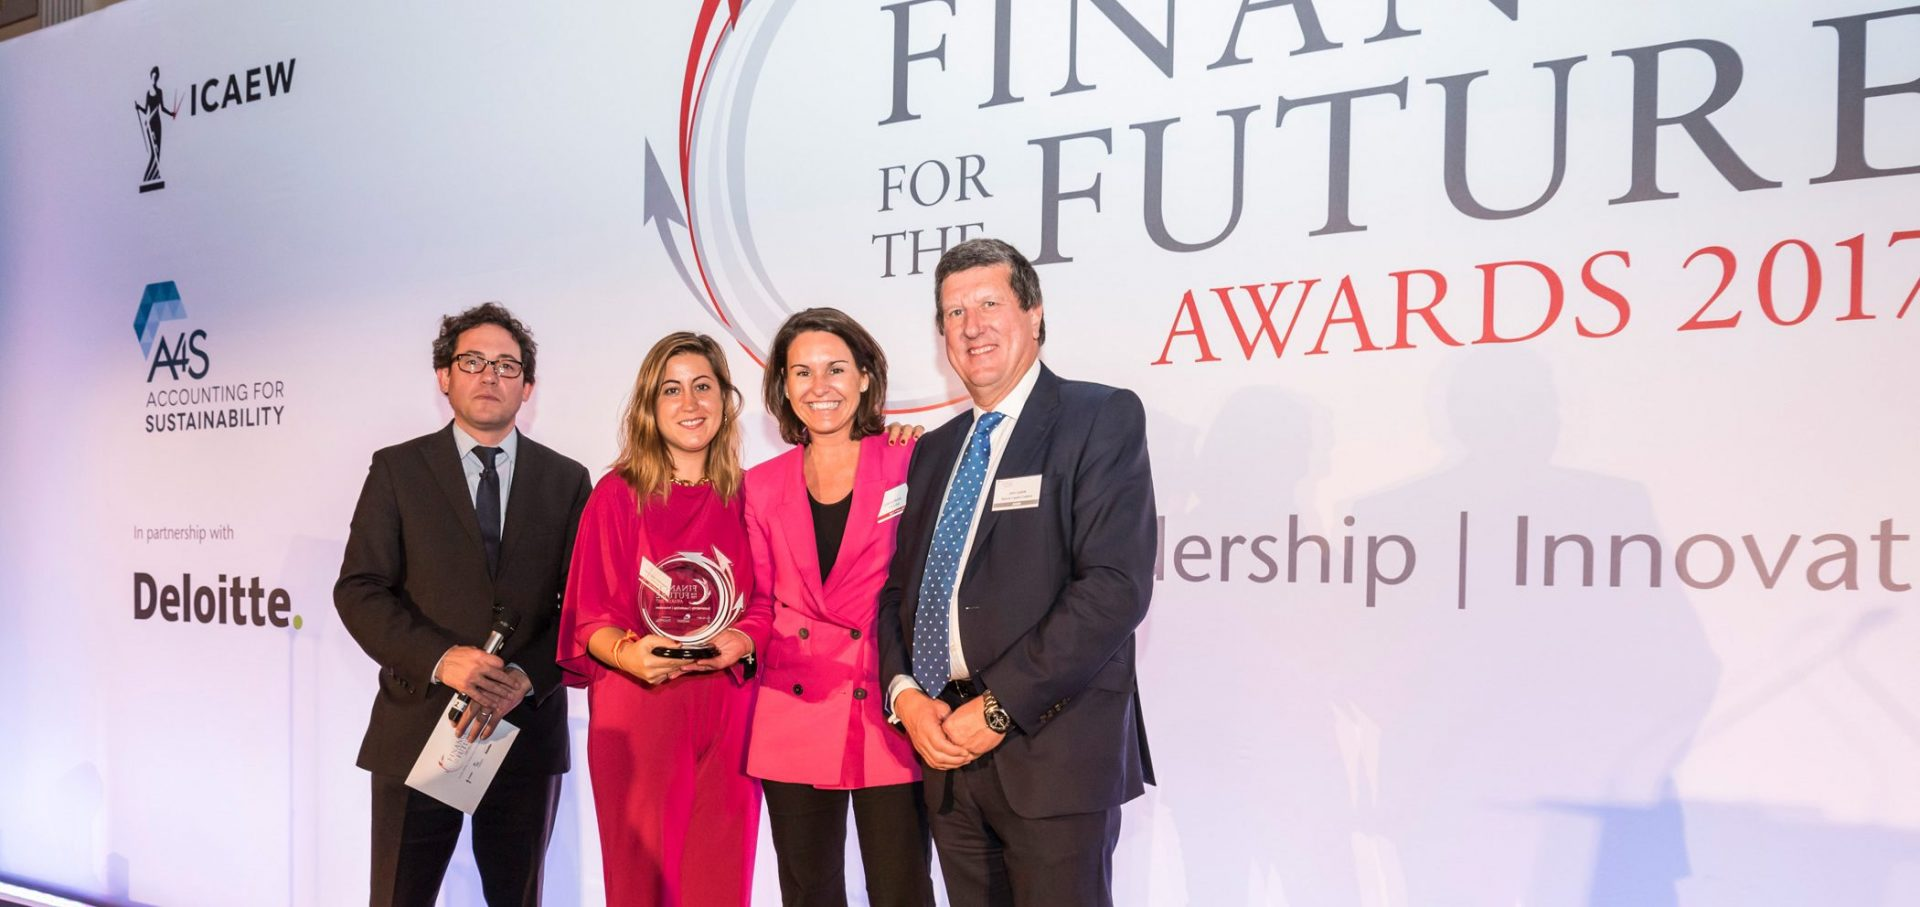 Ferrovial winners at finance for the future awards